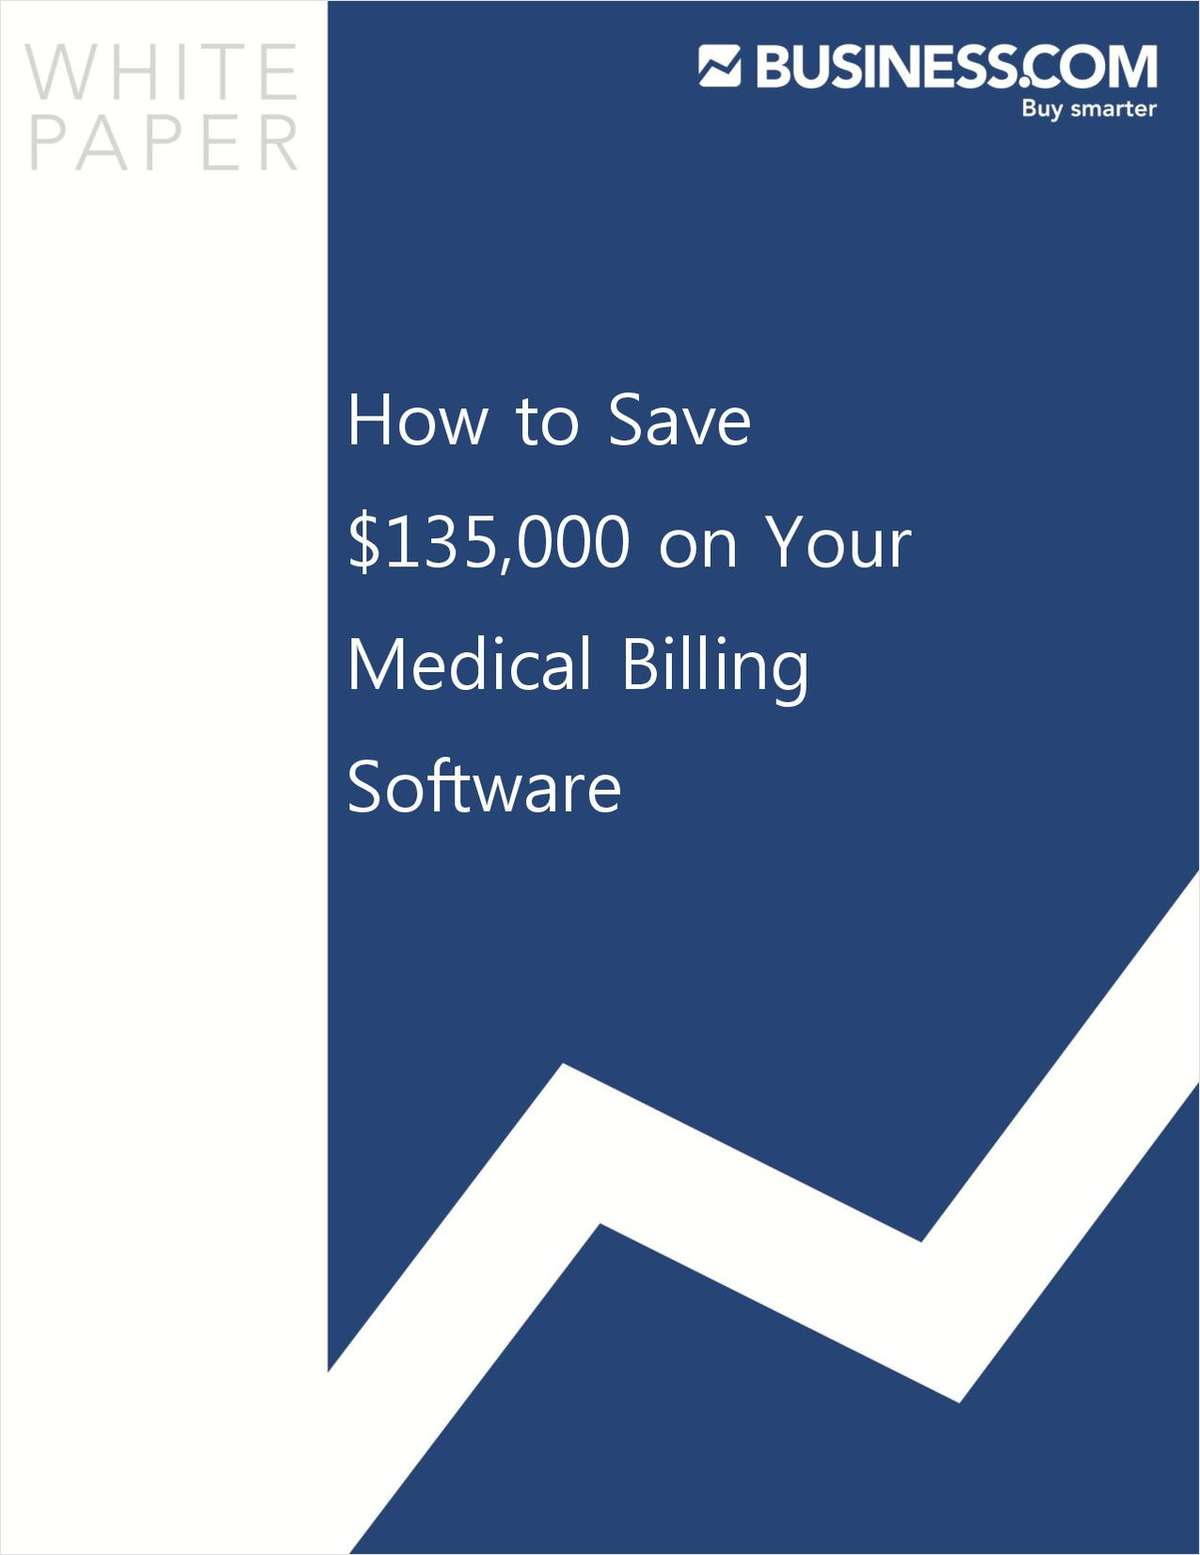 How to Save $135,000 on Your Medical Billing Software